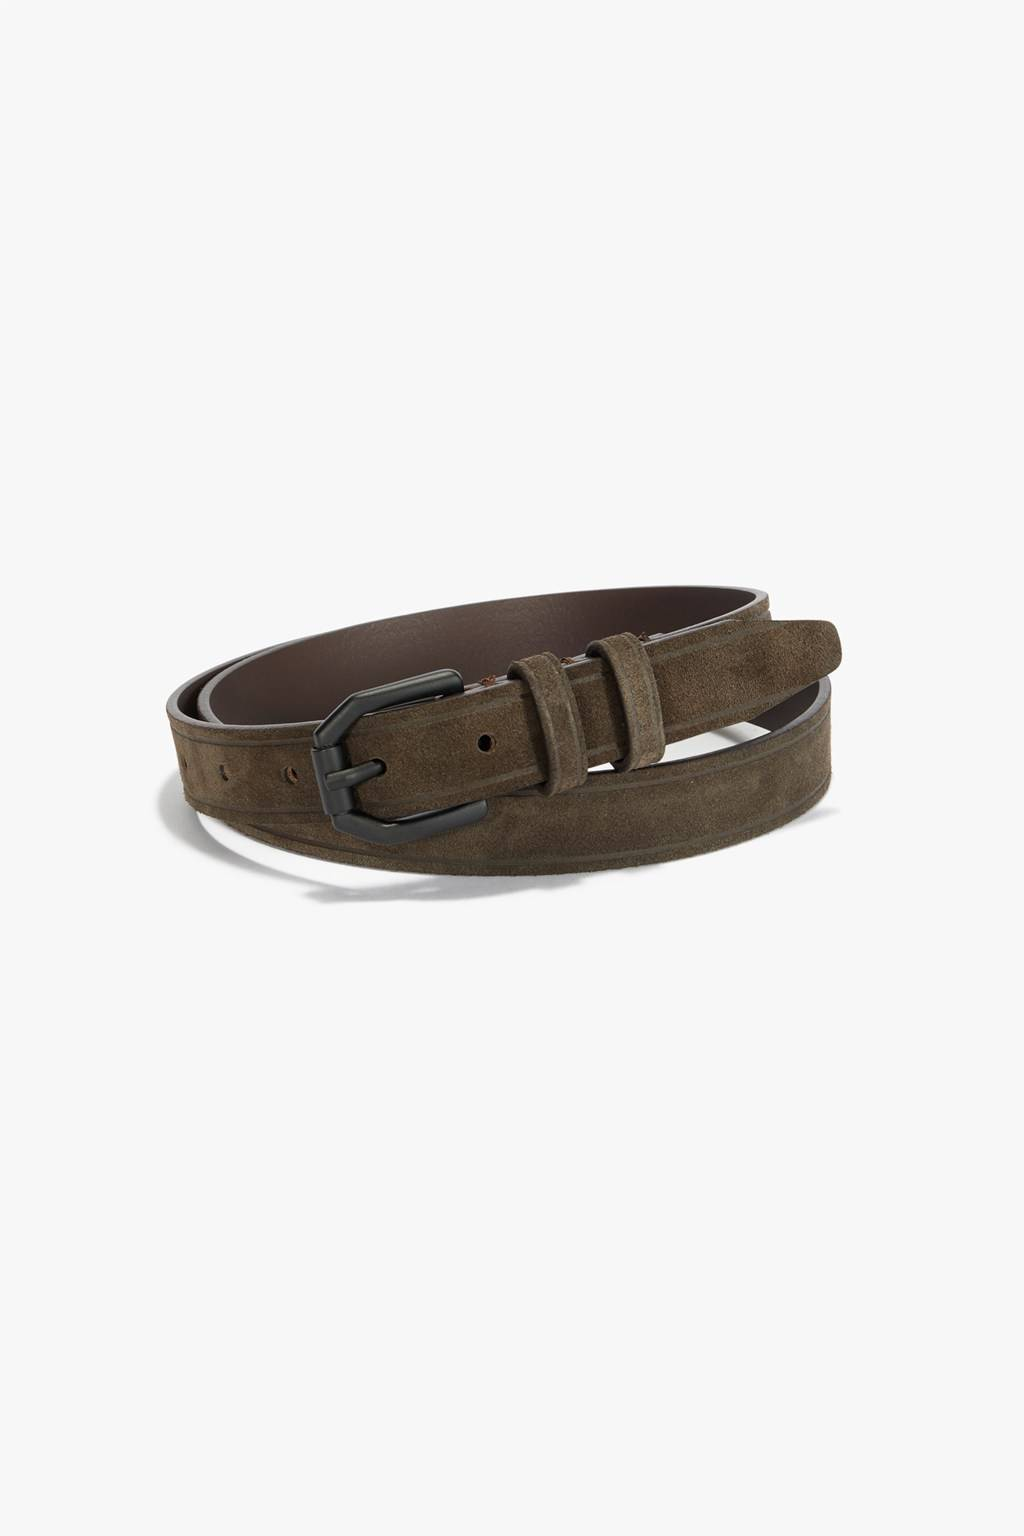 French Connenction Suede Leather Belt